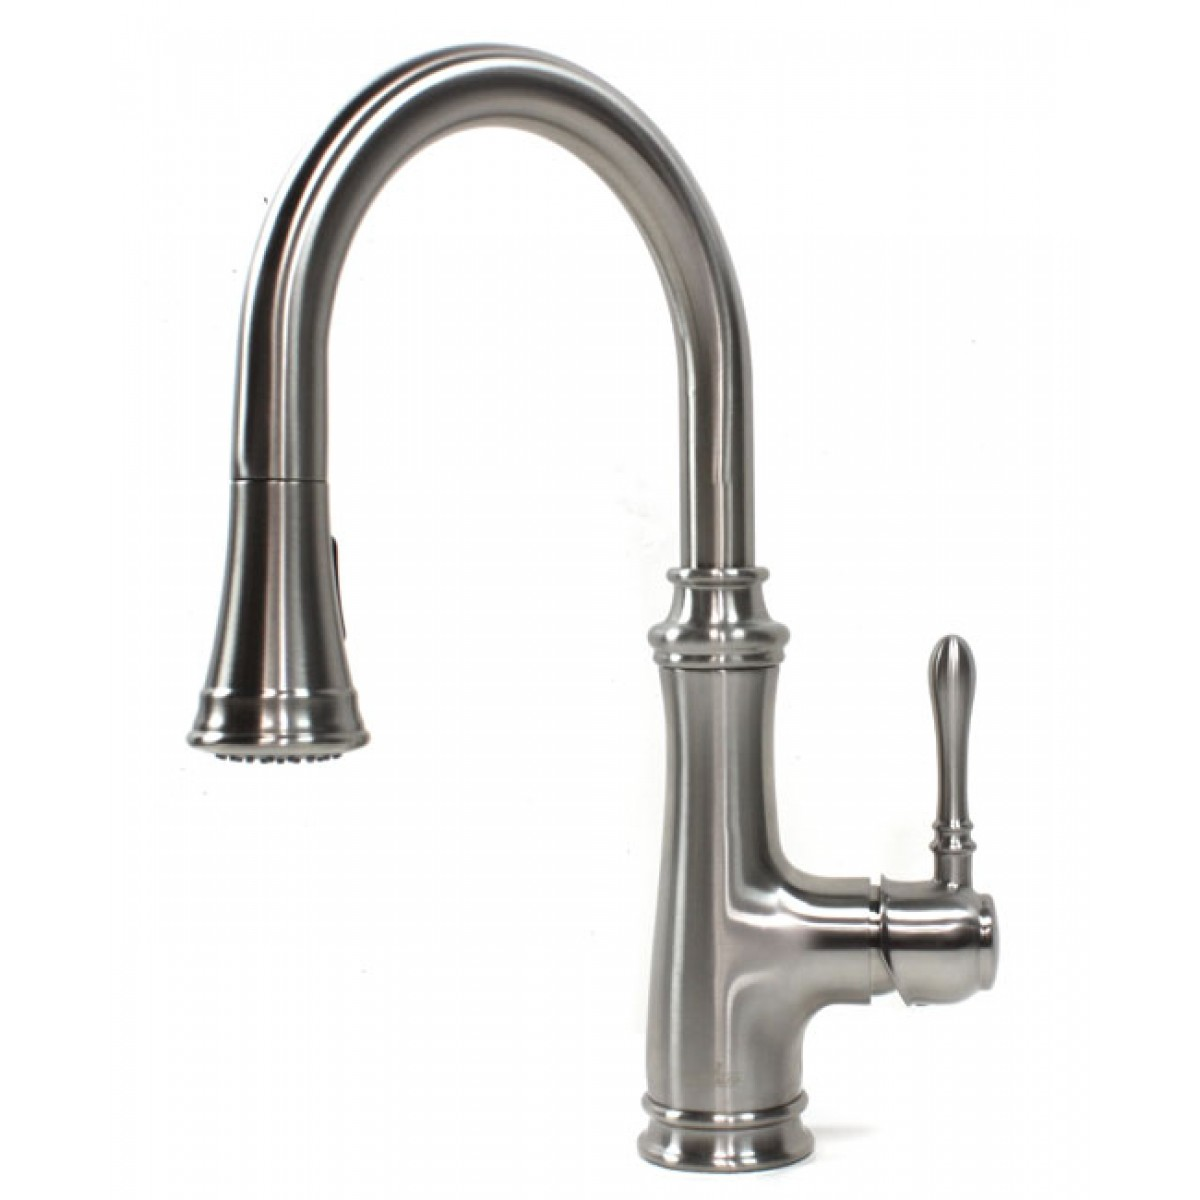 Chess Design Lead Free Brushed Nickel Kitchen Faucet With Pull Out Sprayer